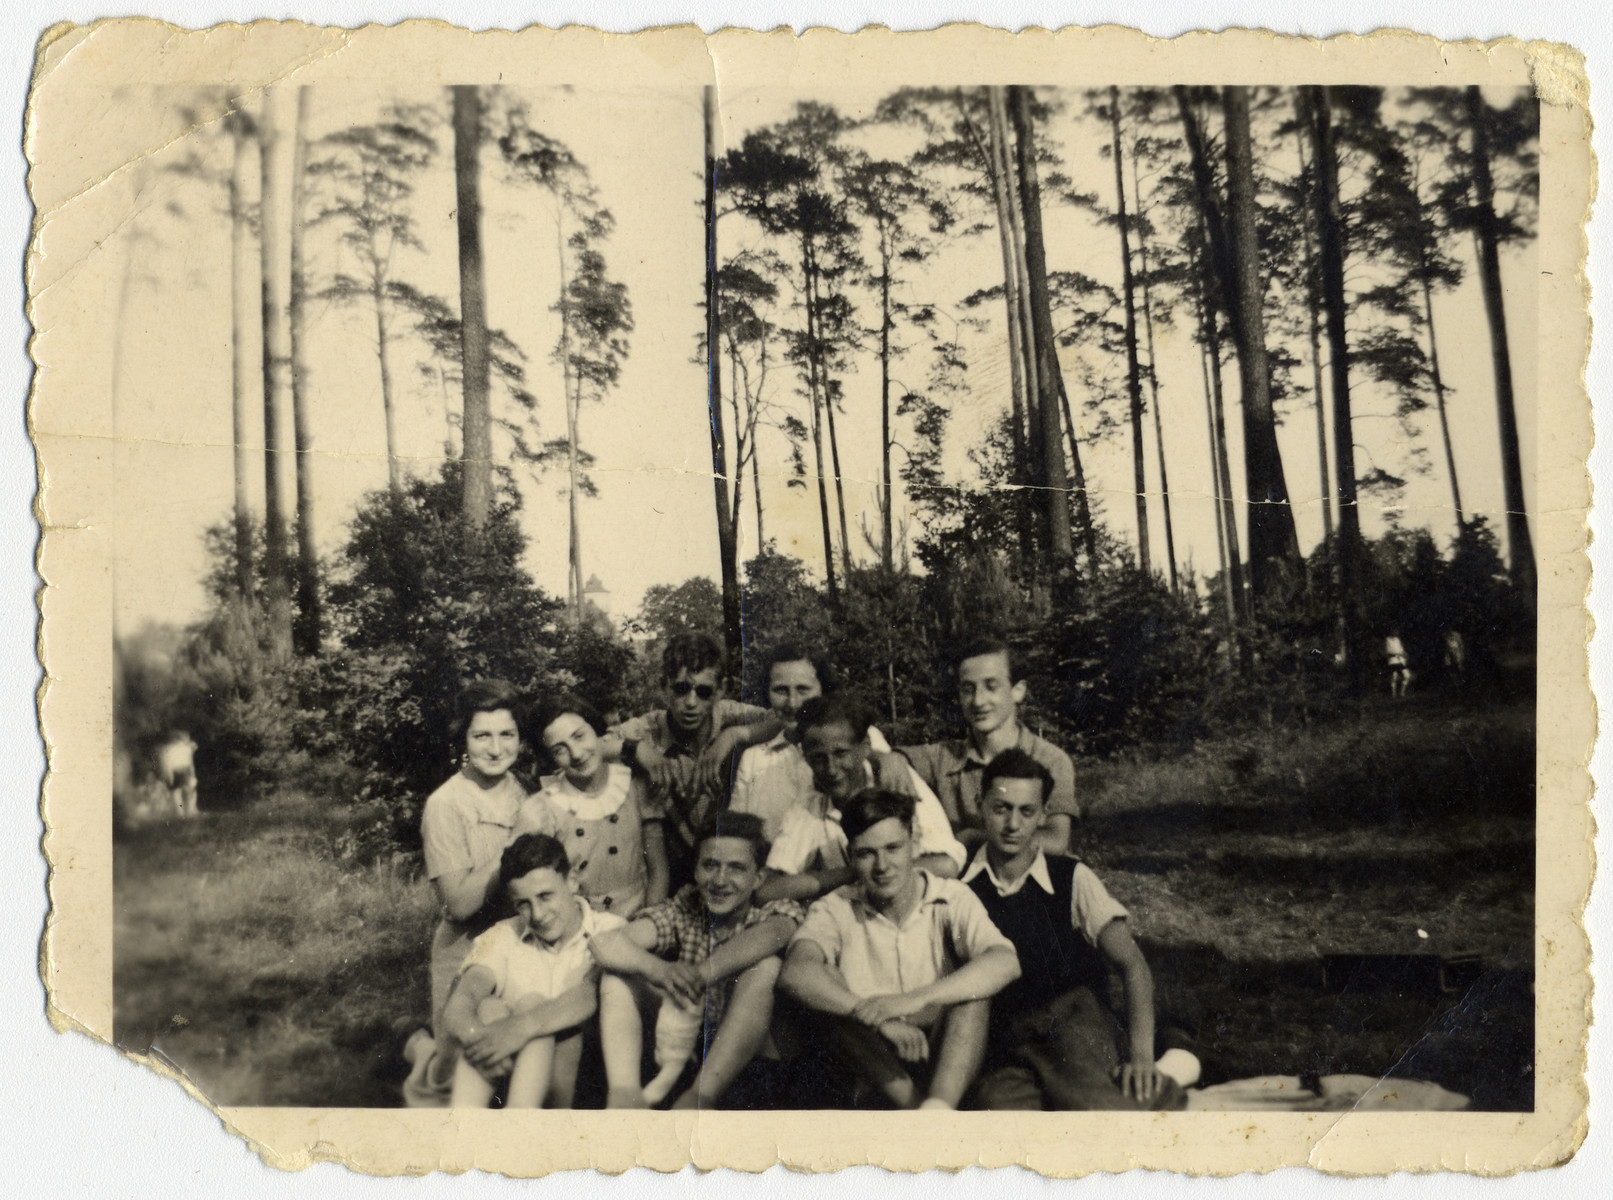 Group portrait of Jewish teenagers in Grunenwald, Berlin.